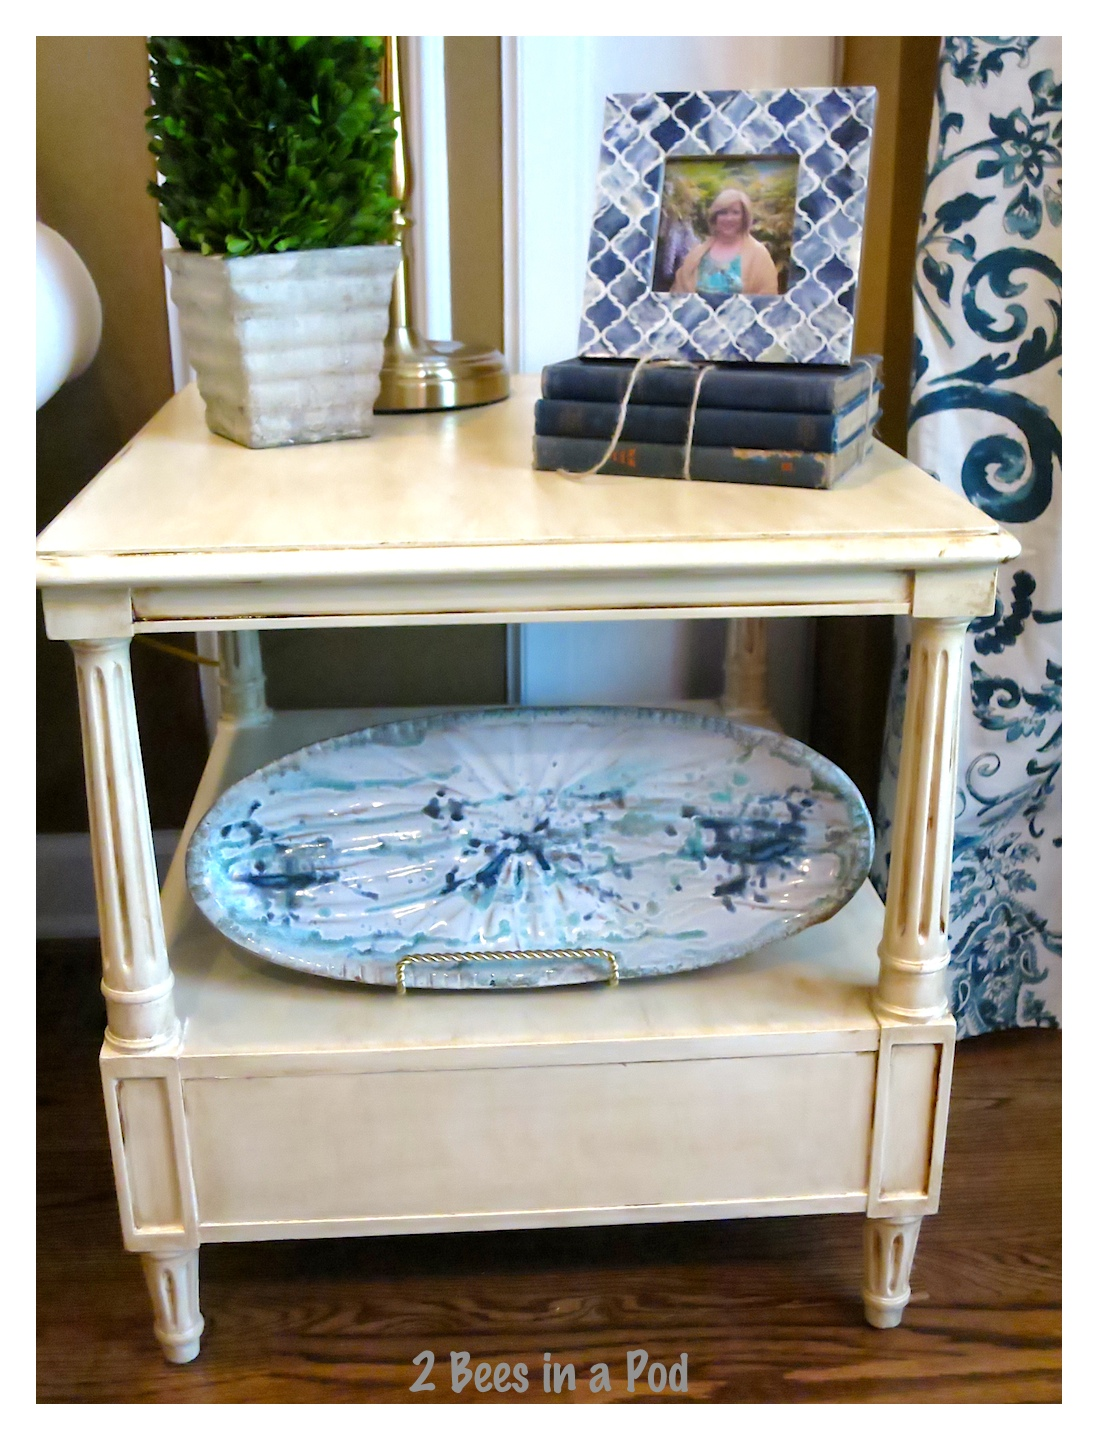 We couldn't believe what the sticker price was for this thrifted find and put our paint skills to work for this painted end table project.